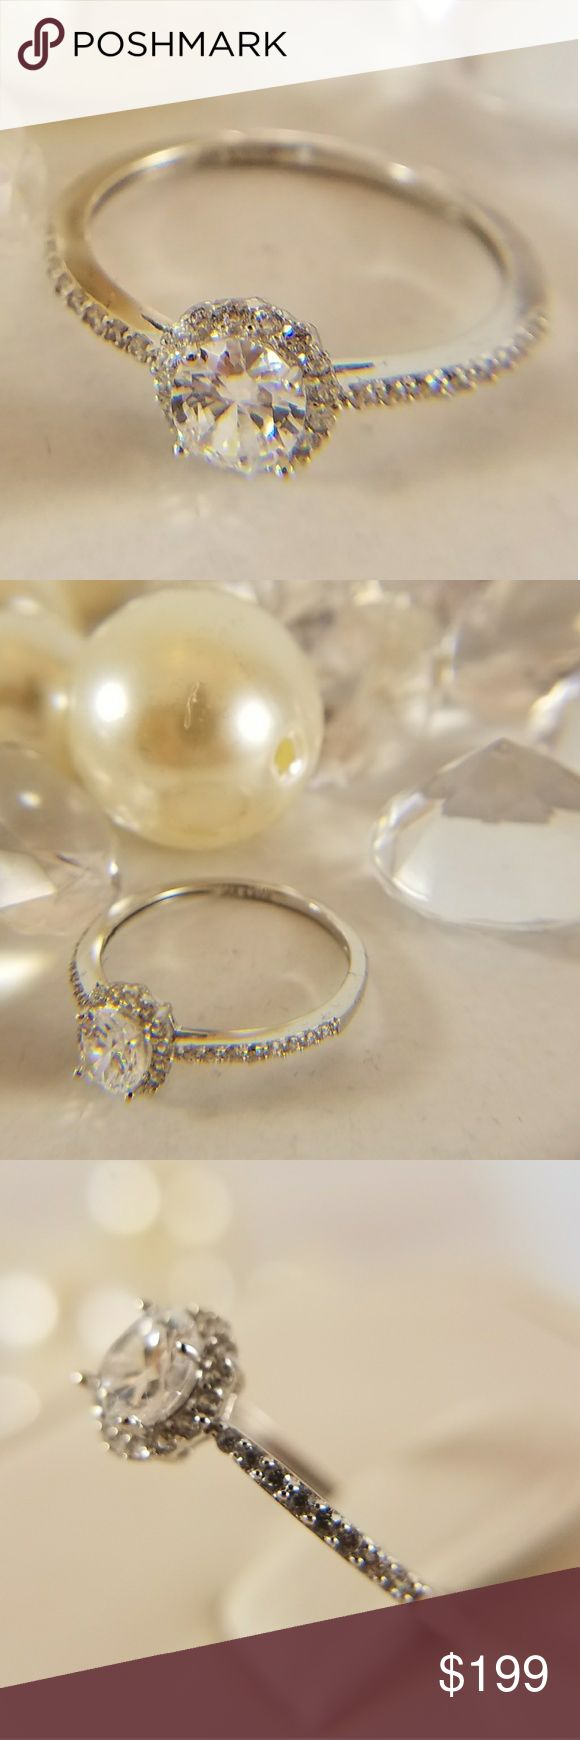 14k Solid White Gold Engagement 1/2 karat man made Diamond Center stone Engagement Ring  Available in sizes 4 5 6 7 8 9 Jewelry Rings